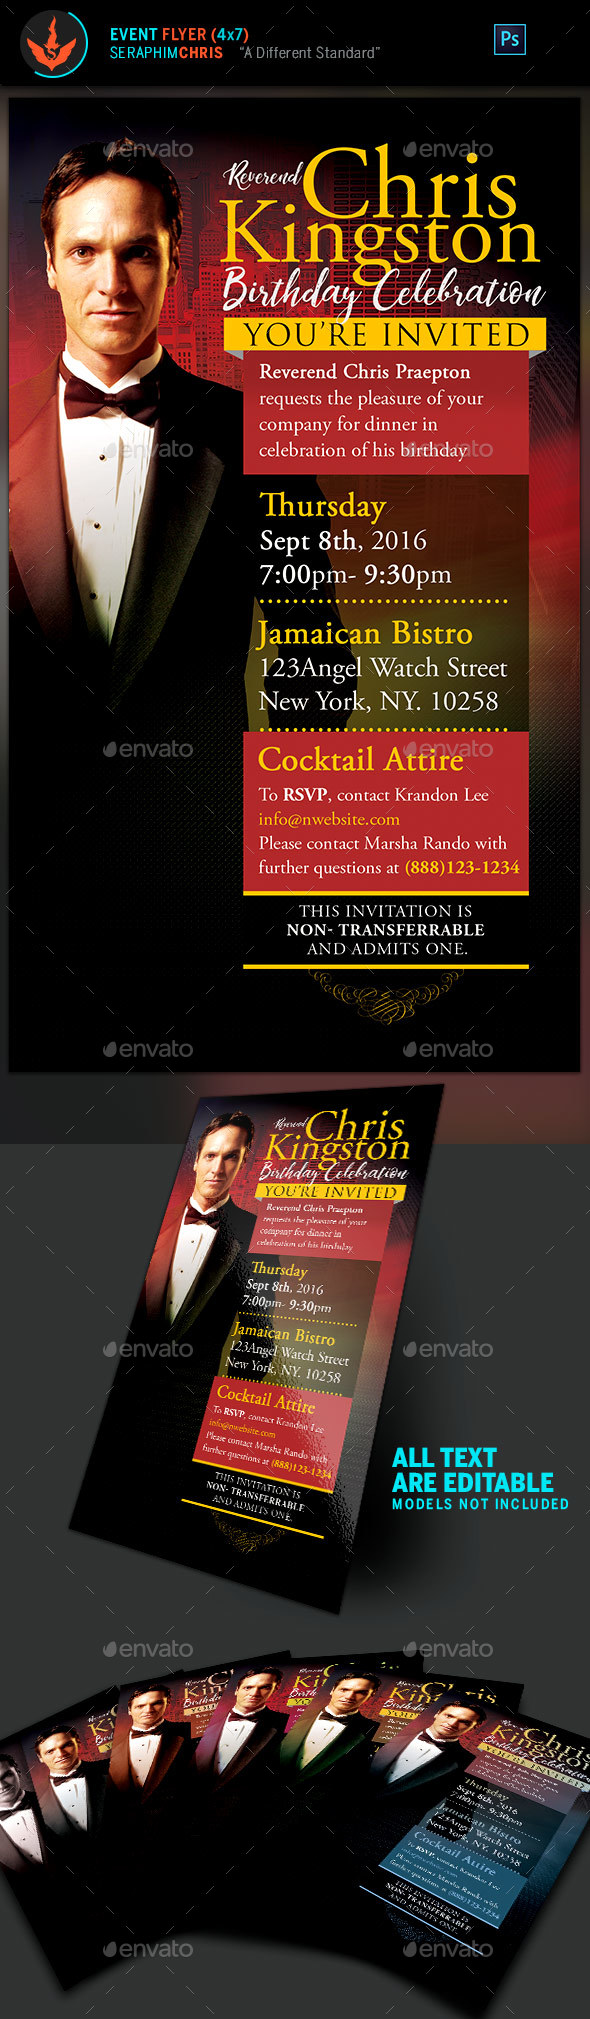 Pastor's Birthday Celebration Invitation Template - Church Flyers